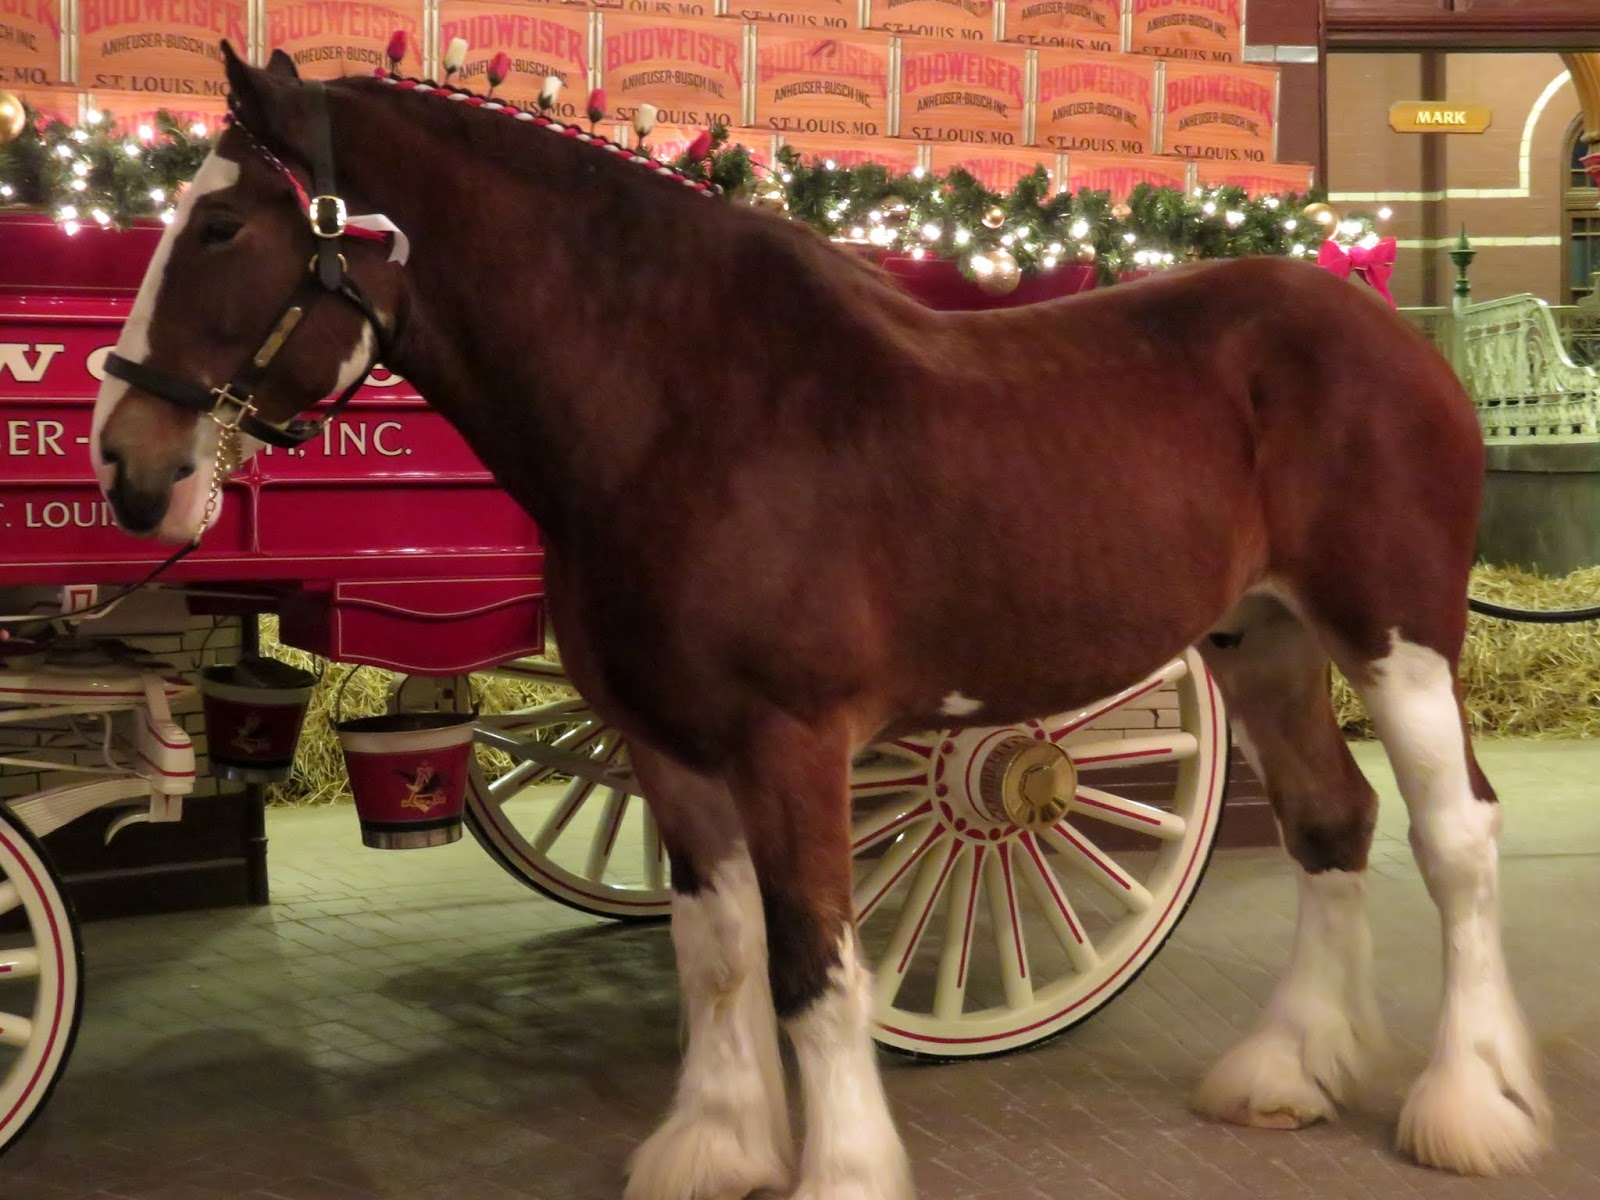 laurie loves horsesand who doesnt love the magnificent anheuser busch clydesdales one of the highlights of our little tour and a break from the